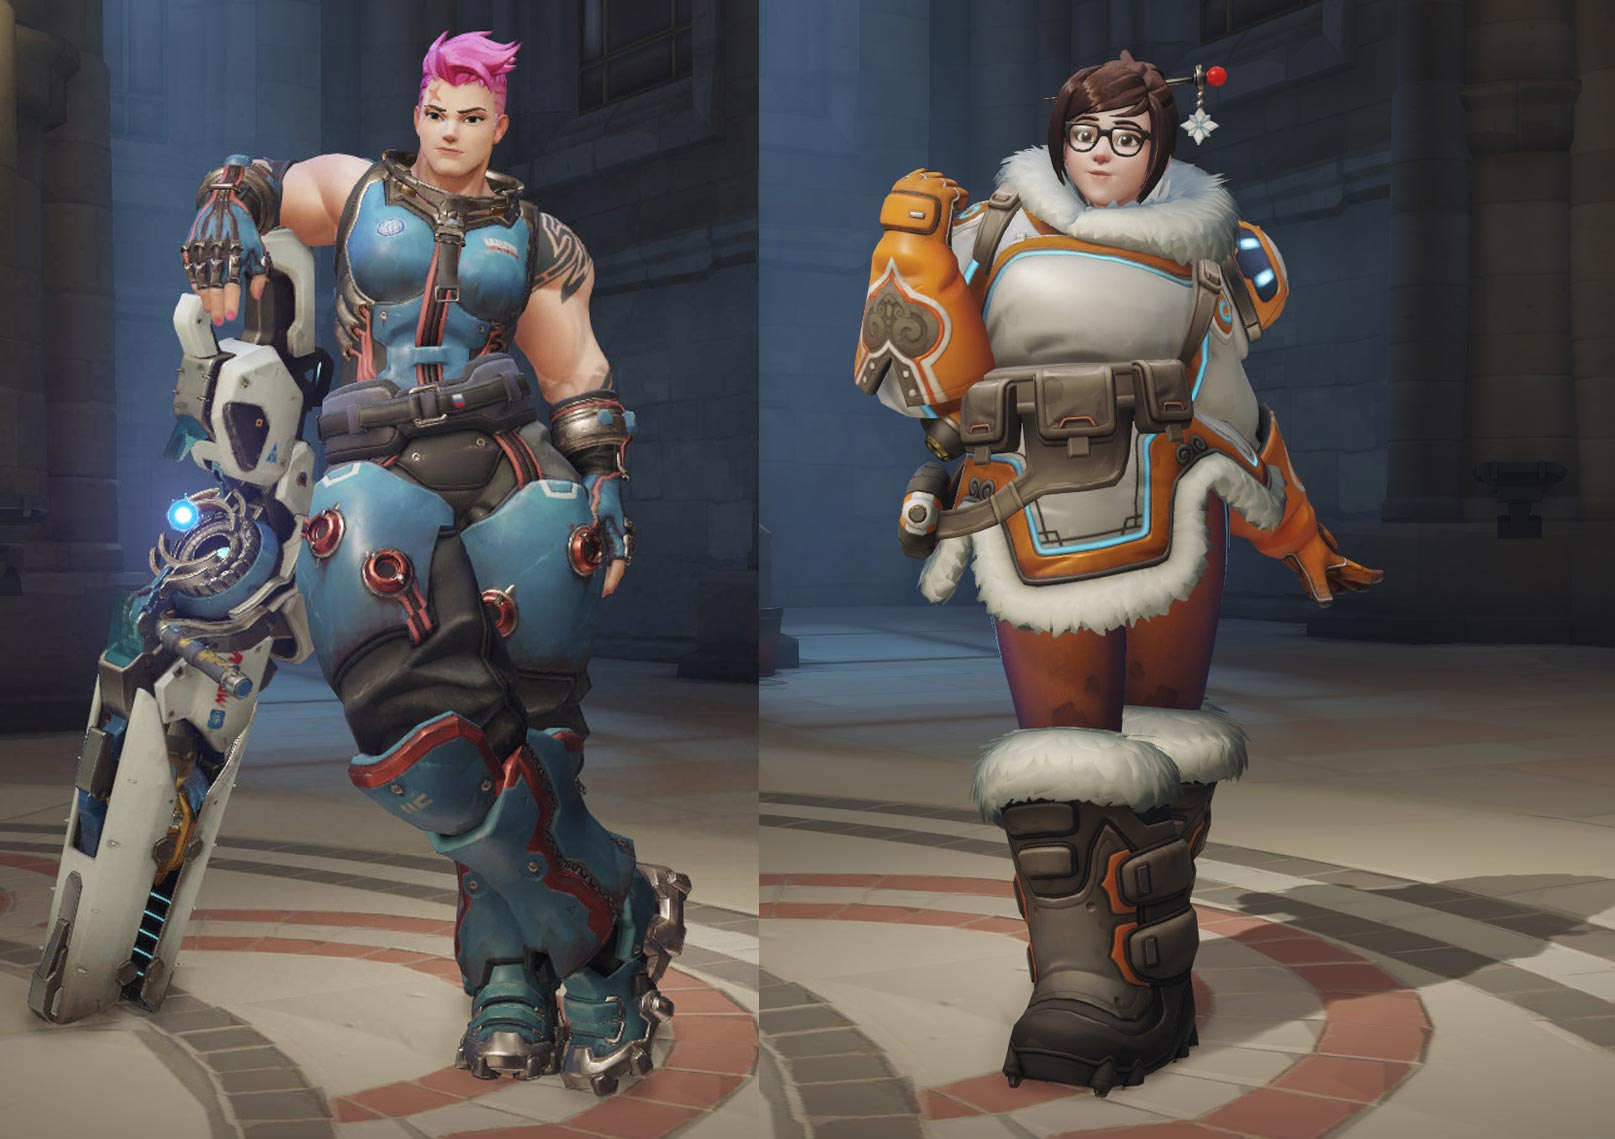 Thin Ectomorphs Given Makeovers to Look Like Average Endomorphs (Zarya and Mei)